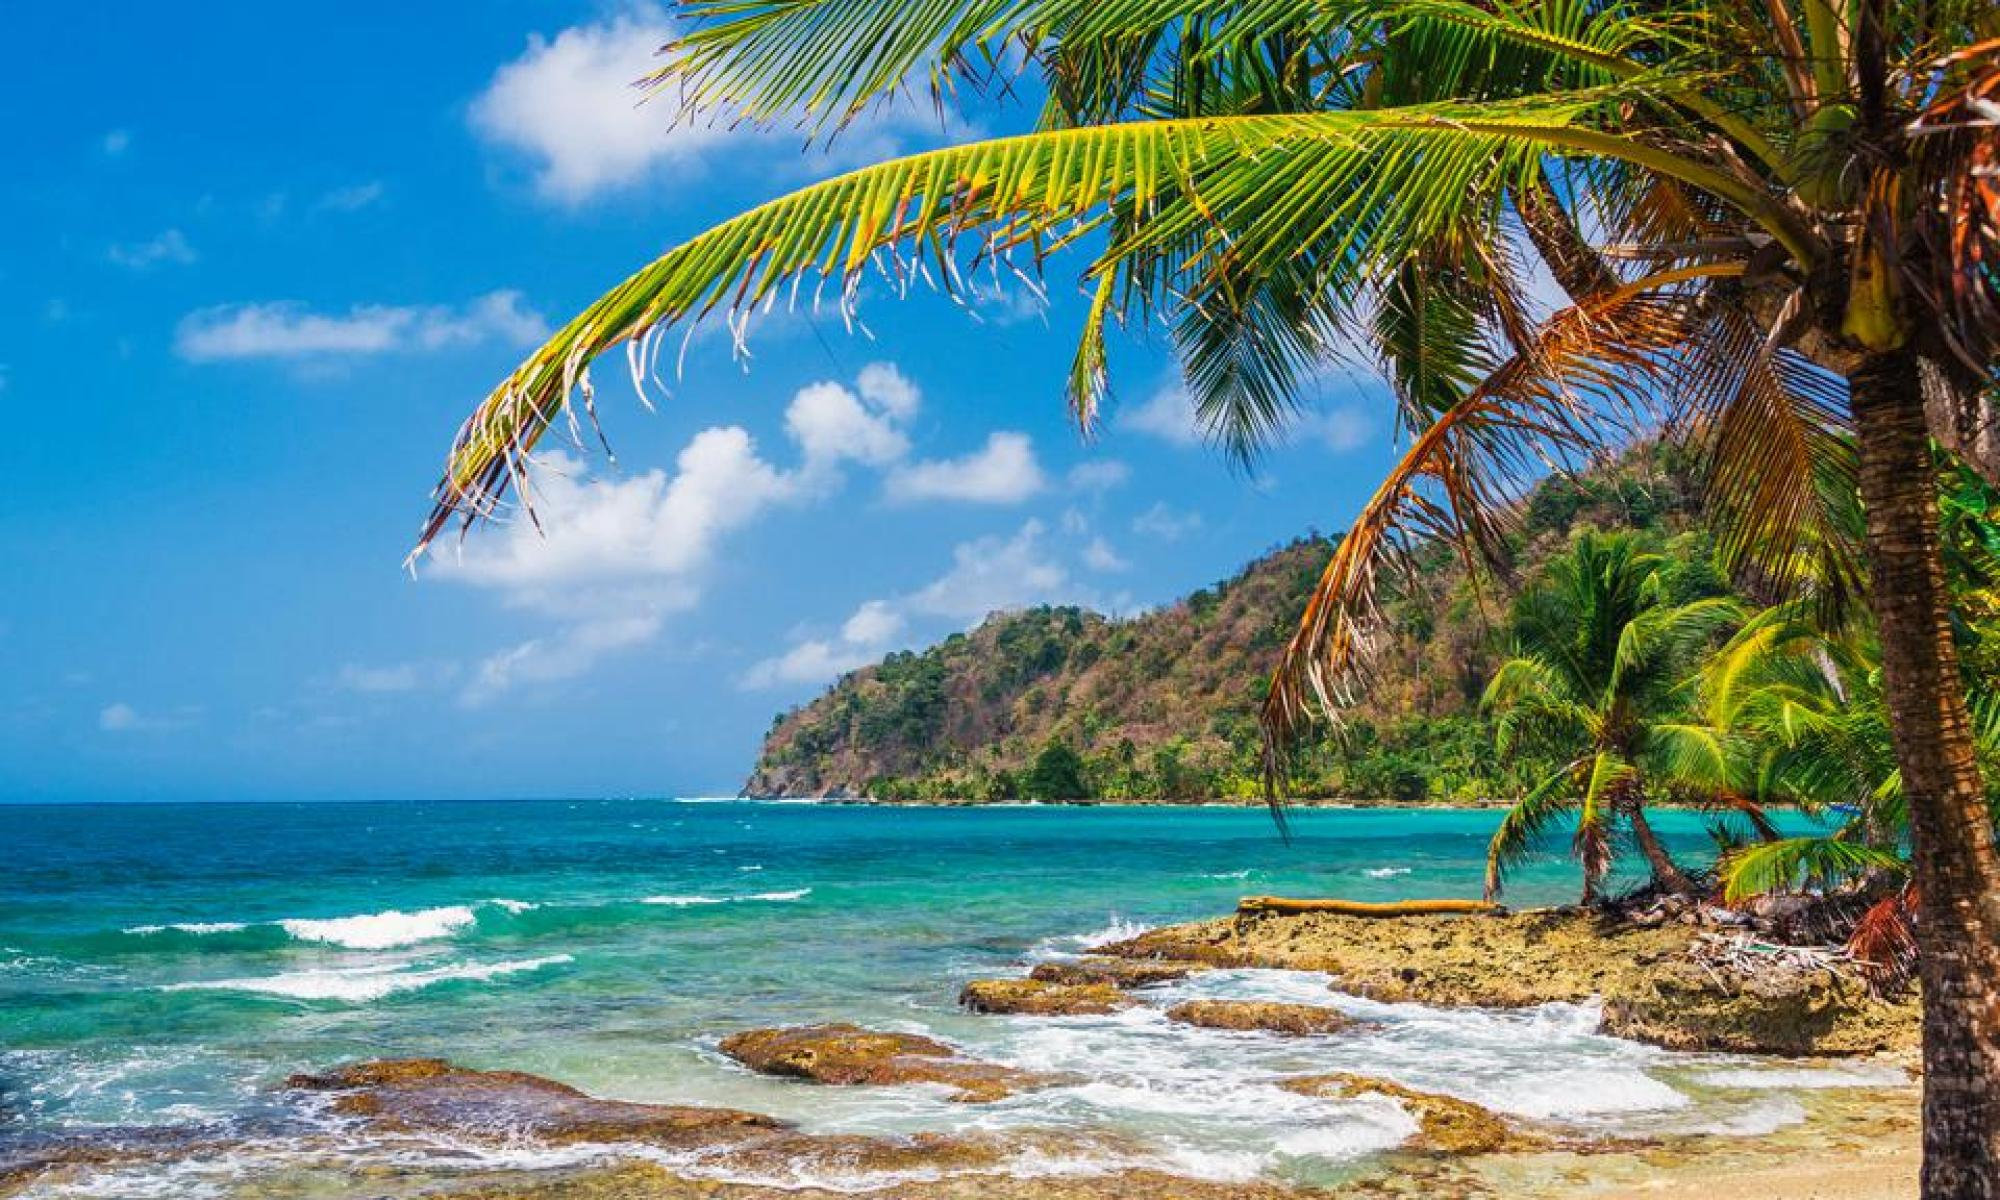 Beach, Please: Nominees can choose a vacation to Panama, one of four trip options in the Oscars gift bag, worth an estimated $15,000 to $20,000 per person.